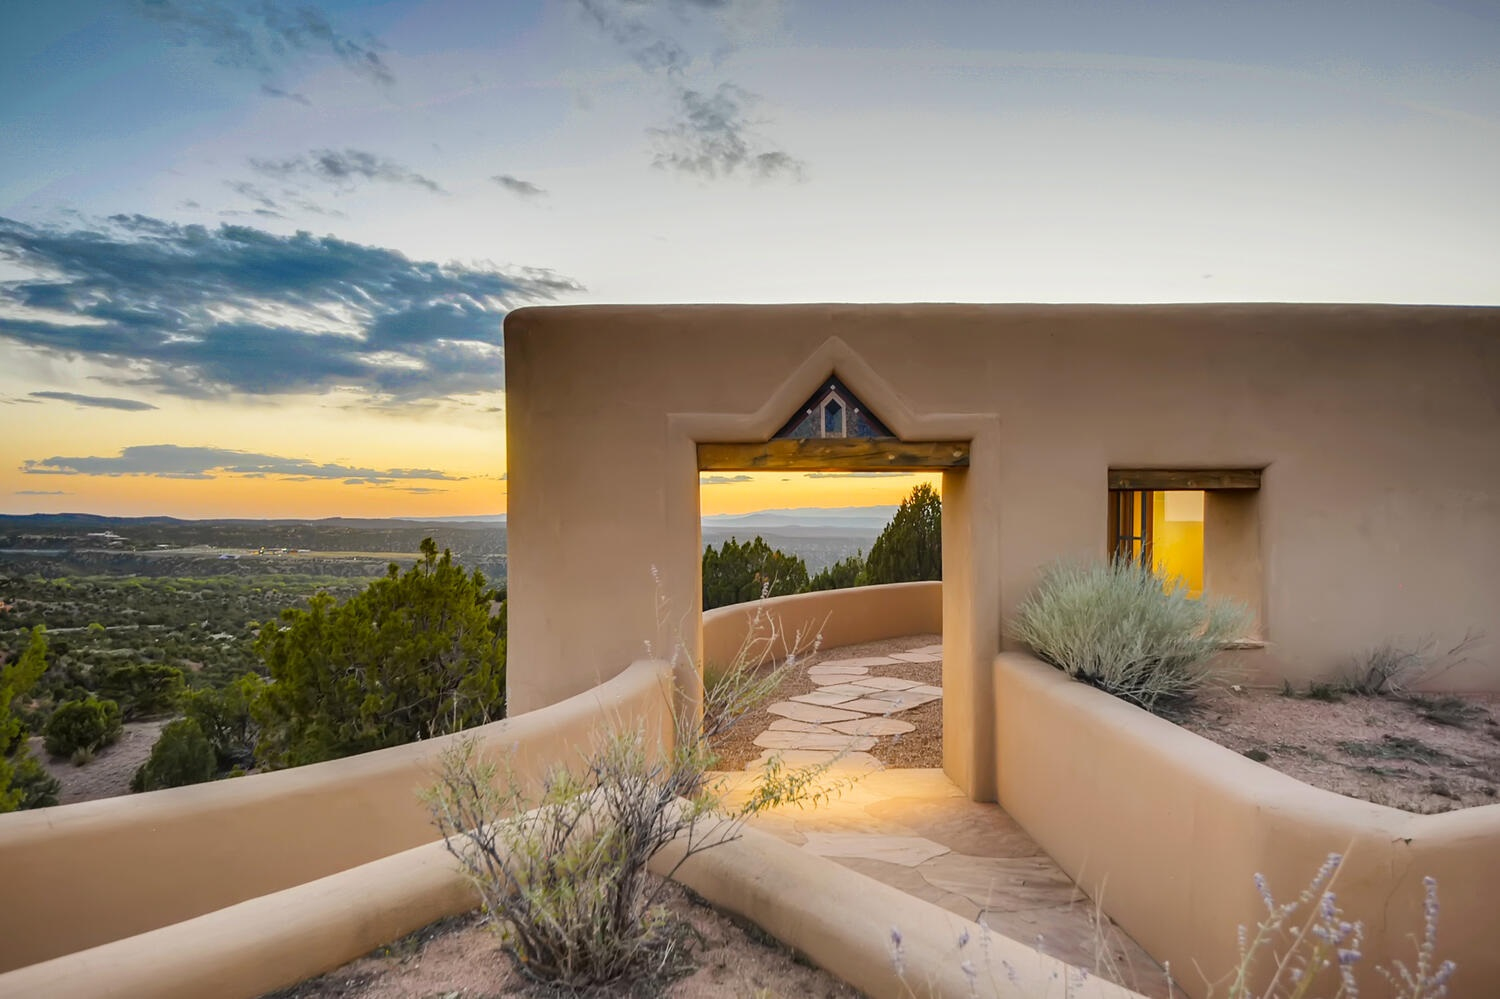 This stunning Ken Mackenzie masterpiece boasts million dollar views of Sangres to the east and the vast Jemez to the west and north! Incredible architectural details paired with fine indigenous stone, wood and plaster finishes make this home a one of a kind along with its intense 360 views. This property will take your breath away! Every window has a picture to show you and as you open the garage door looking out – there are views! Every detail inside is a hidden surprise. You will find yourself in awe not only with the views but with the interior as well.  A beautiful custom kitchen and dining area open to the living room that flaunts large picture windows, French doors leading to the patio and a show stopping fireplace. There are two sets of impressive double doors that lead you to the master suite and master bath with a separate shower and tub – there is even a window to look out of while soaking. The guest wing has a ¾ bath an office/den/ or 3rd bedroom. There are so many details to this amazing property - it should be experienced in person. Schedule your private showing today. You might just wish you brought a bottle of wine as you sit on the beautiful patio enjoying the show.